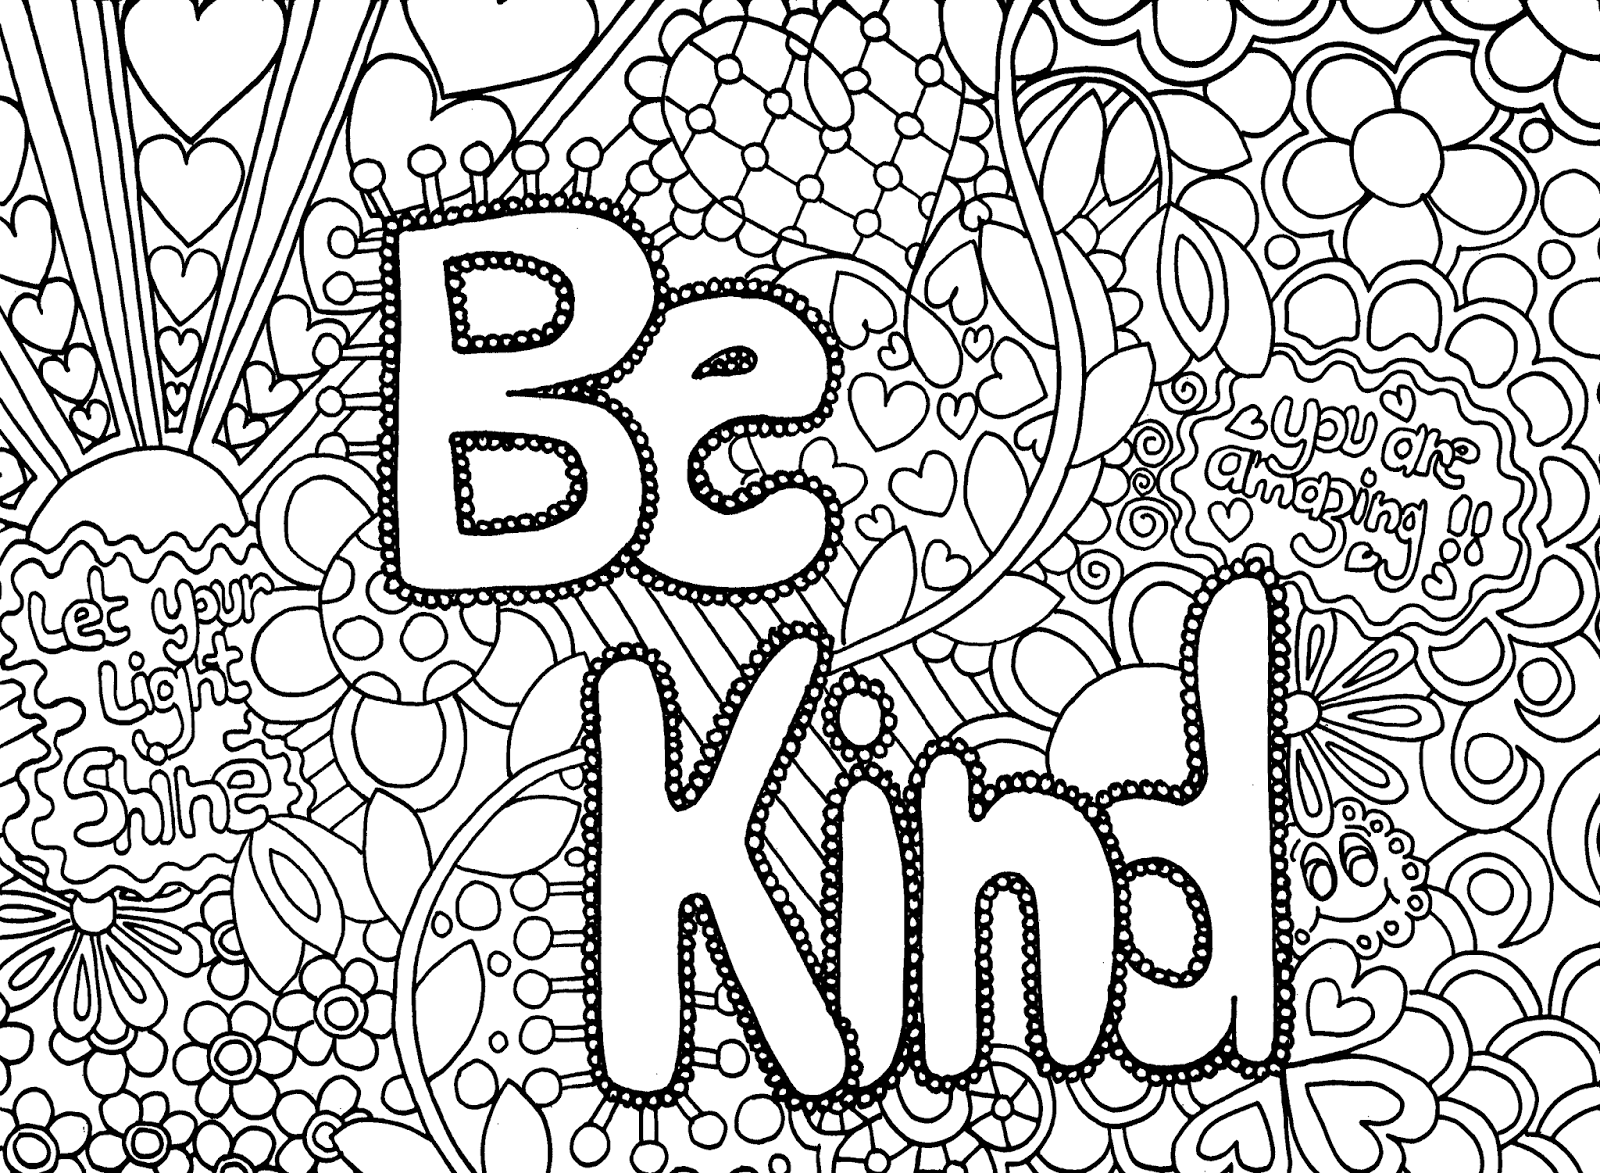 Free coloring pages for adults quotes - Adult Printable Art Coloring Pages Coloring Panda